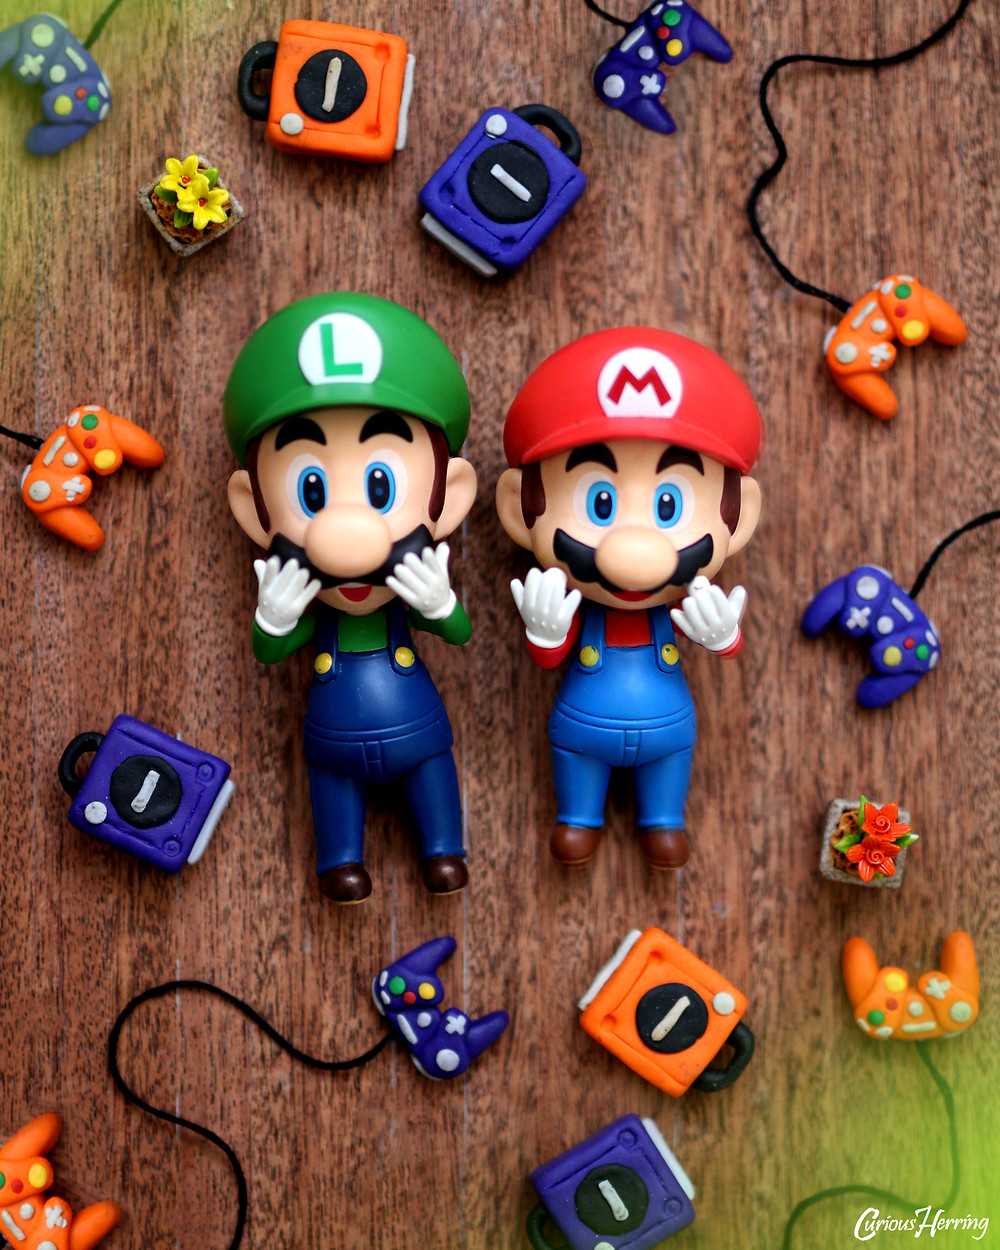 Mario Nendoroid and Luigi Nendoroid with miniature DIY GameCube made out of Fimo. Toy and Nendoroid Photography focusing on Nintendo related figures and games.